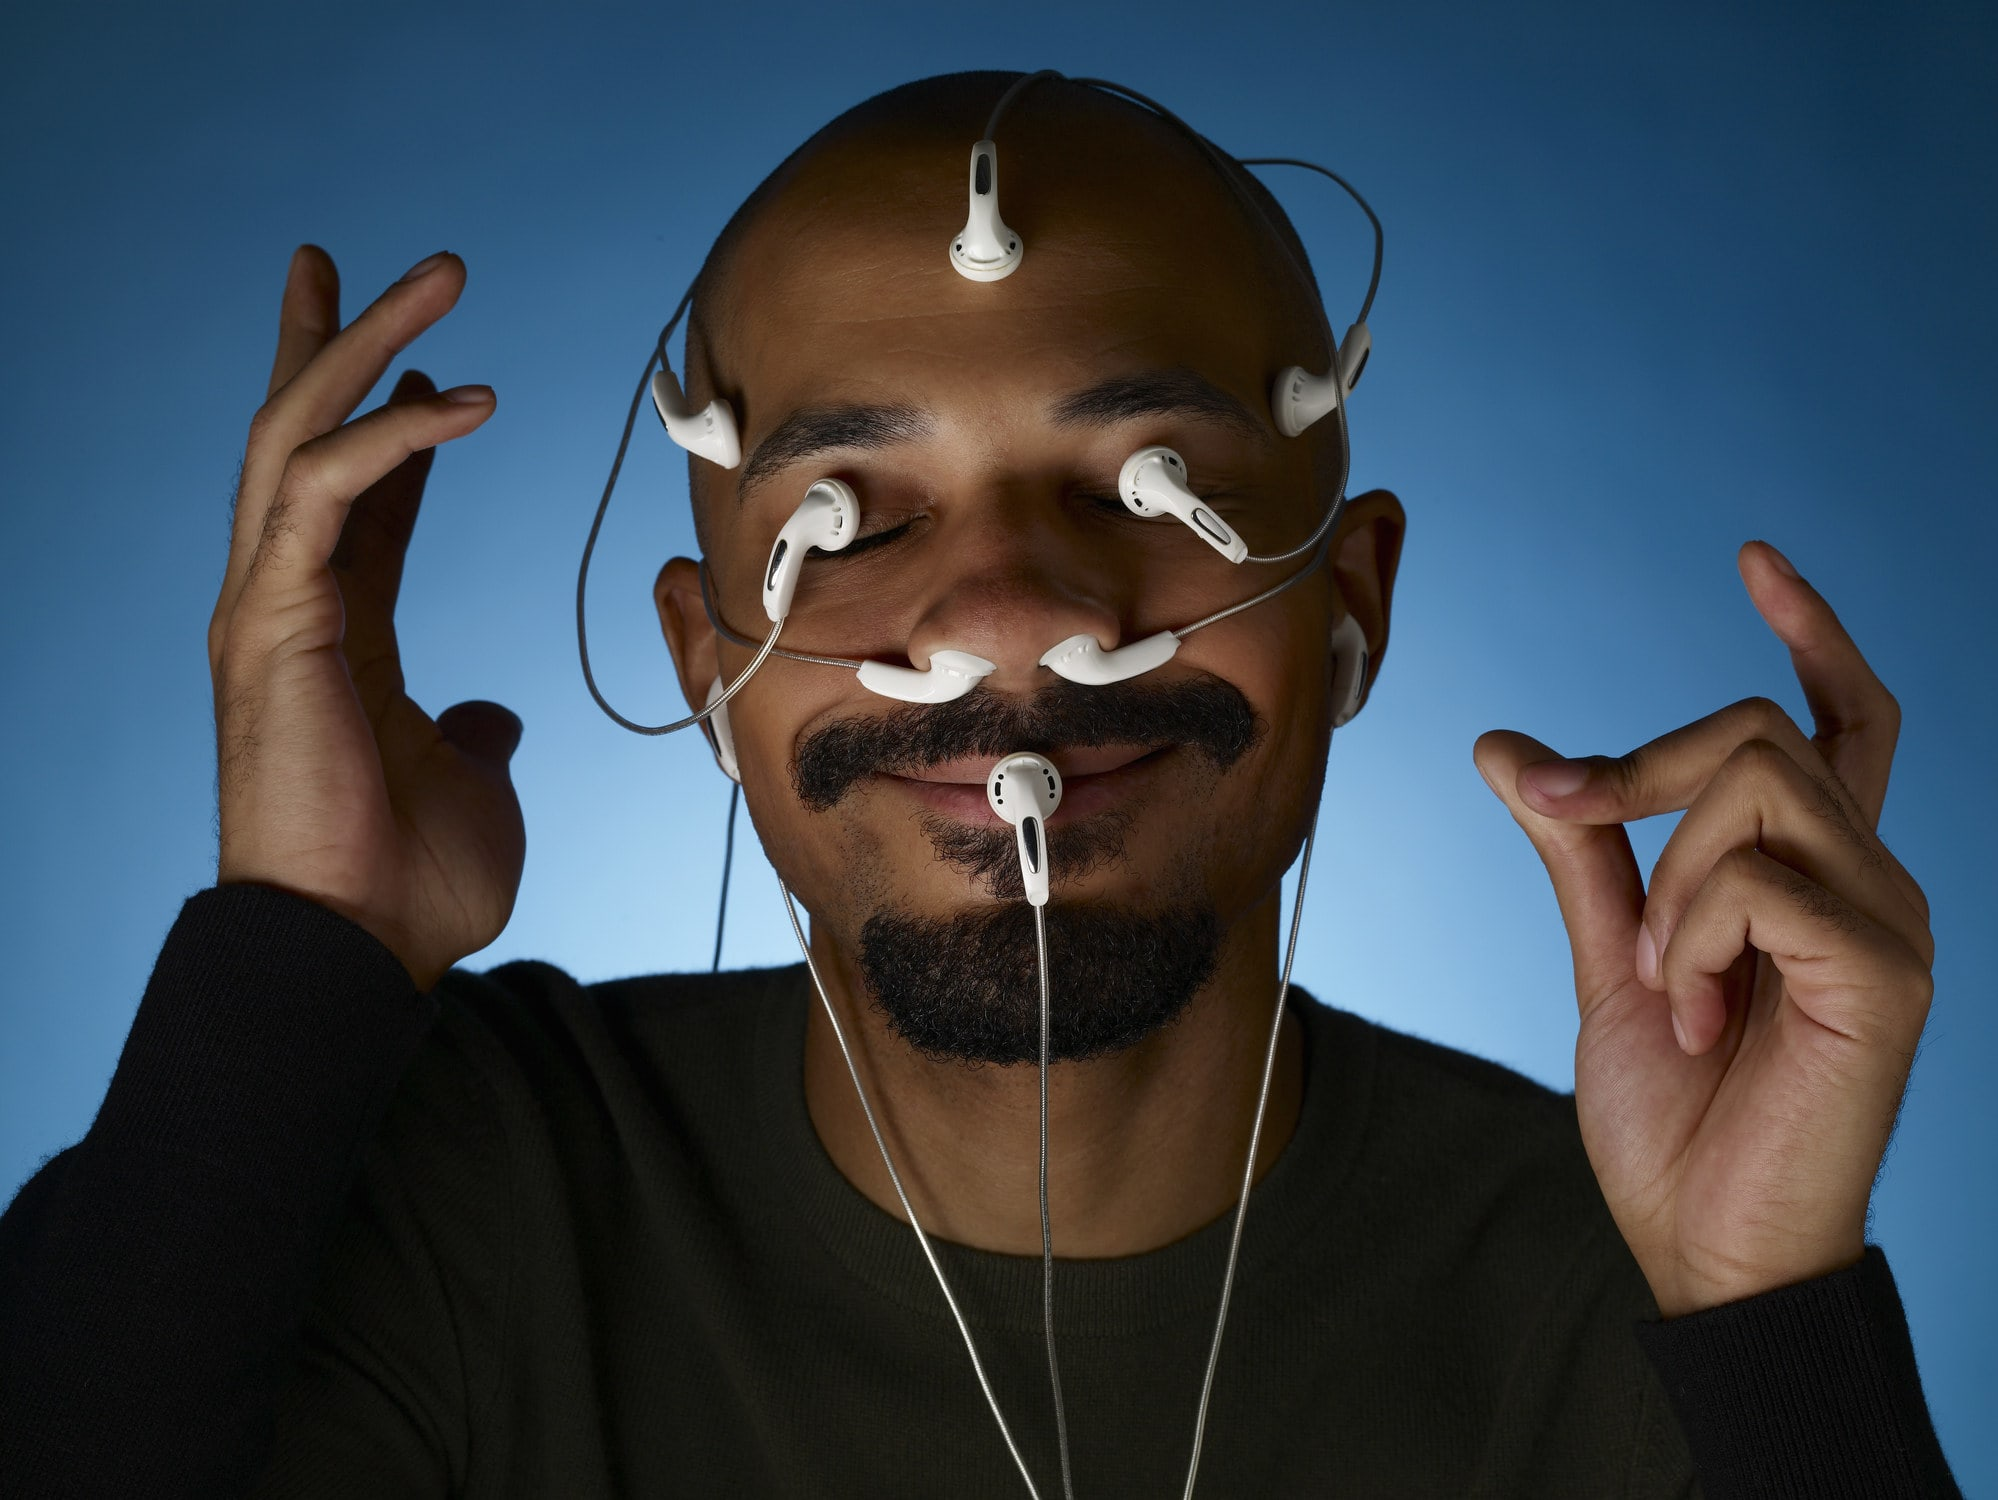 man with headphones all over his face